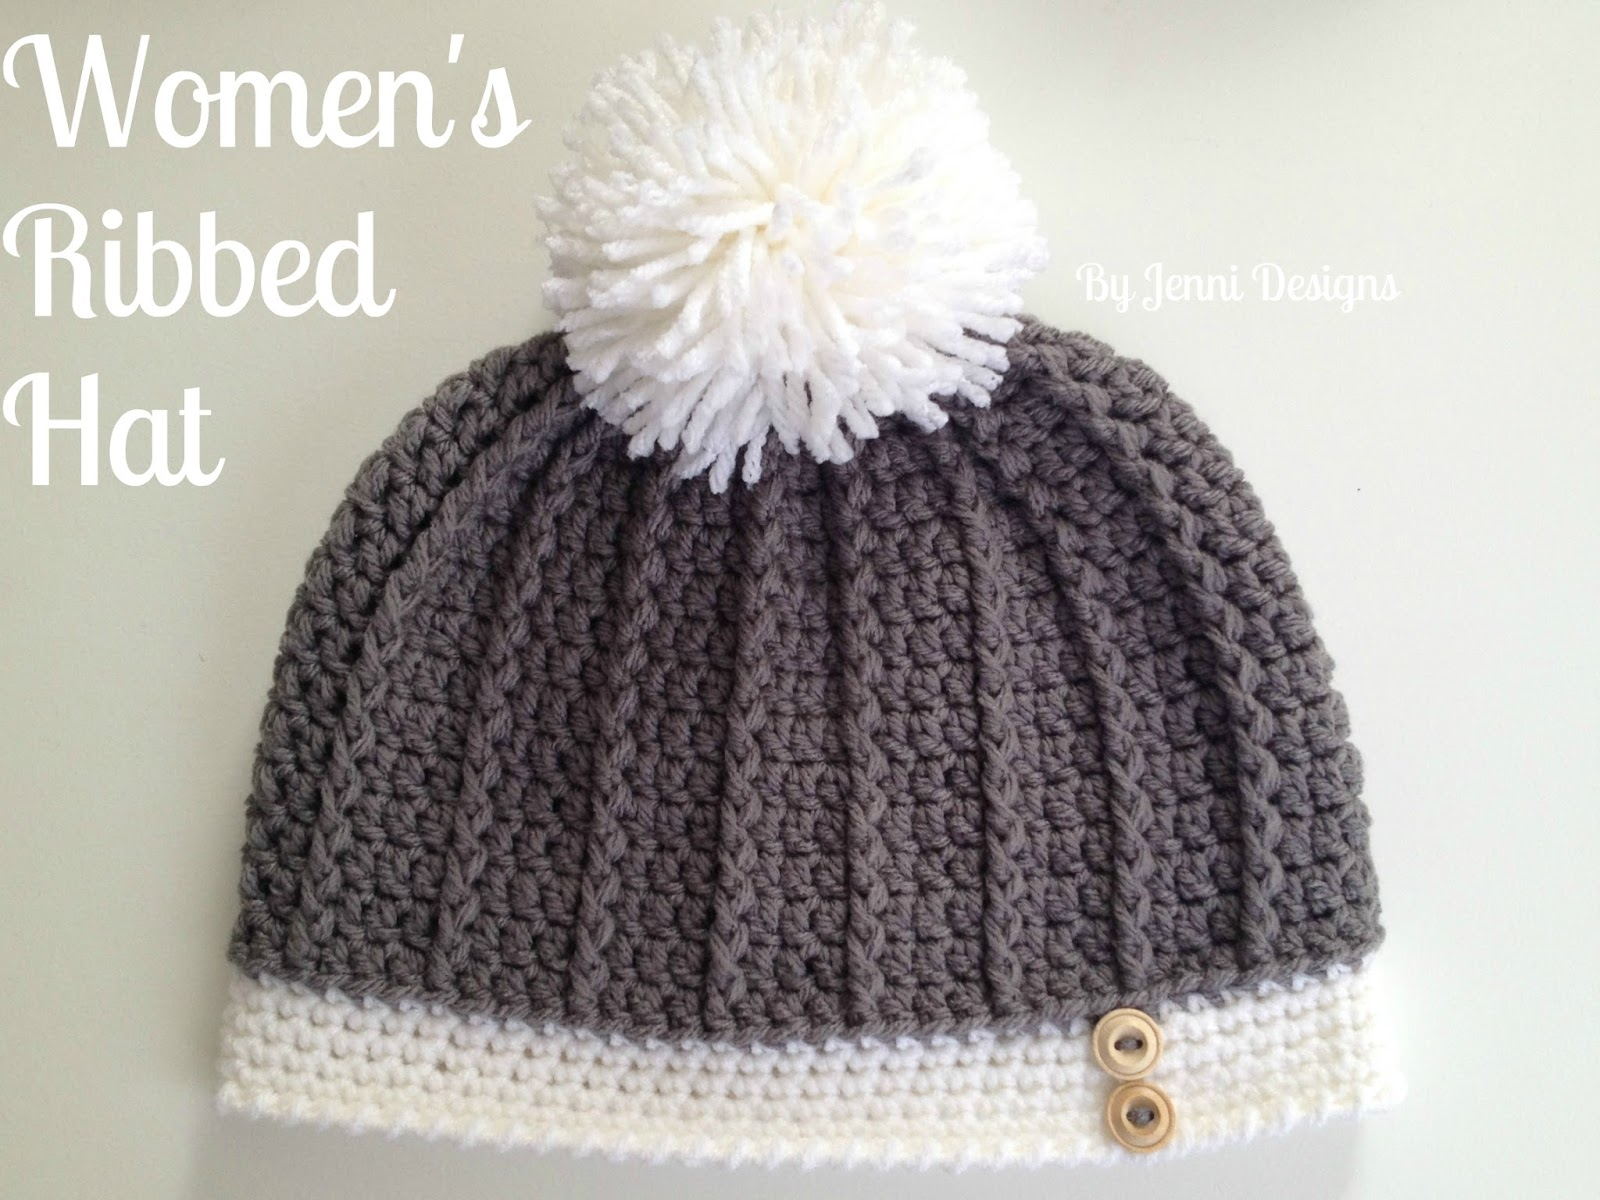 By Jenni Designs Free Crochet Pattern Womens Ribbed Hat